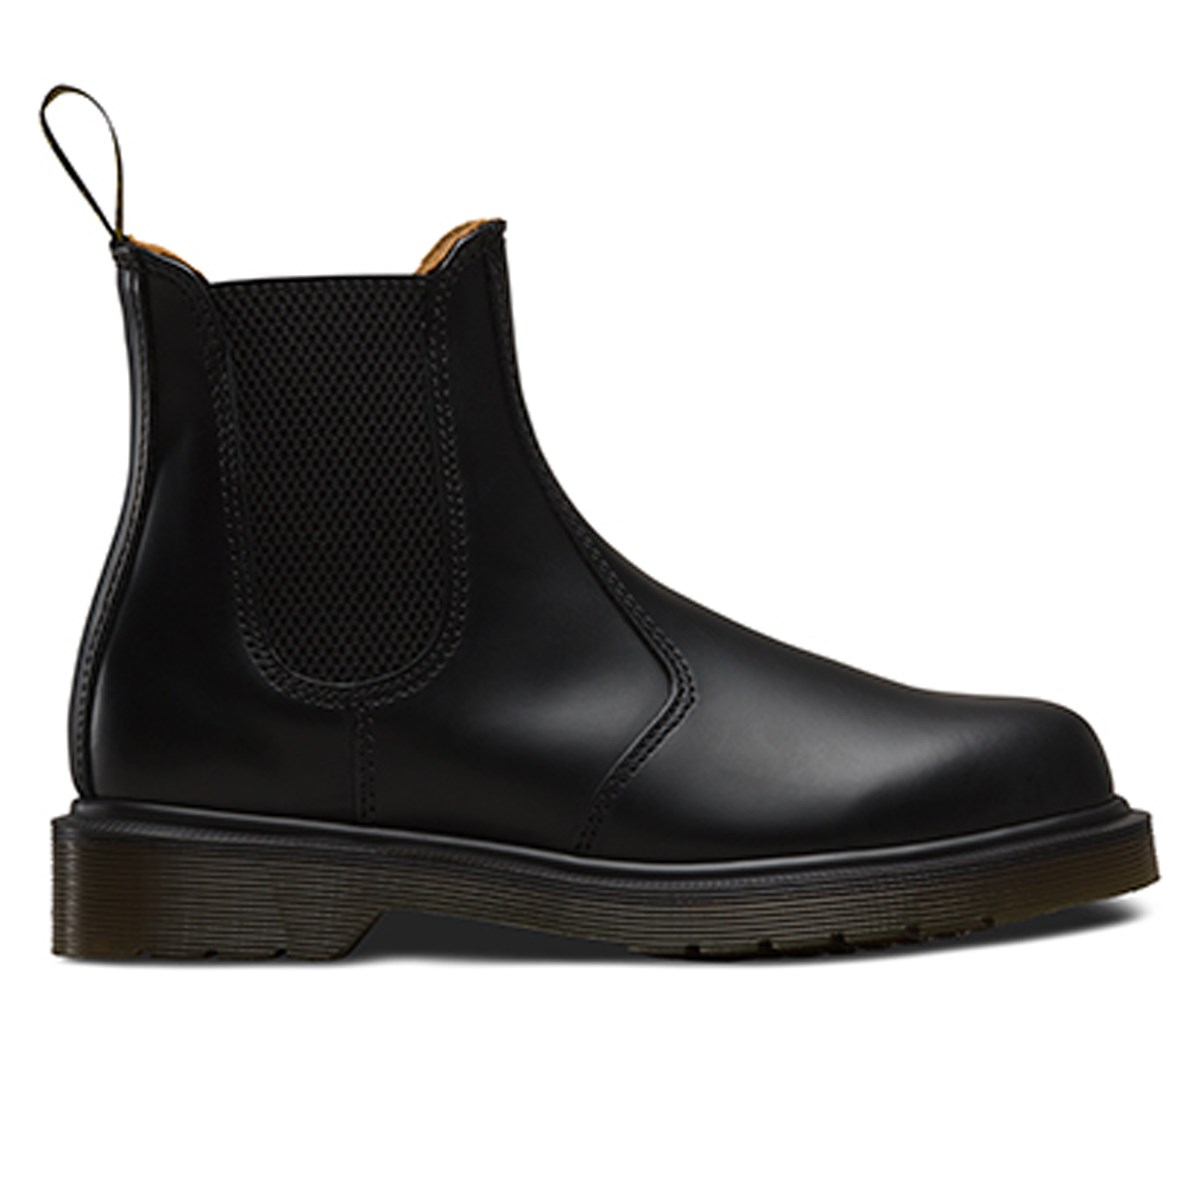 Men's 2976 Smooth Black Chelsea Boots